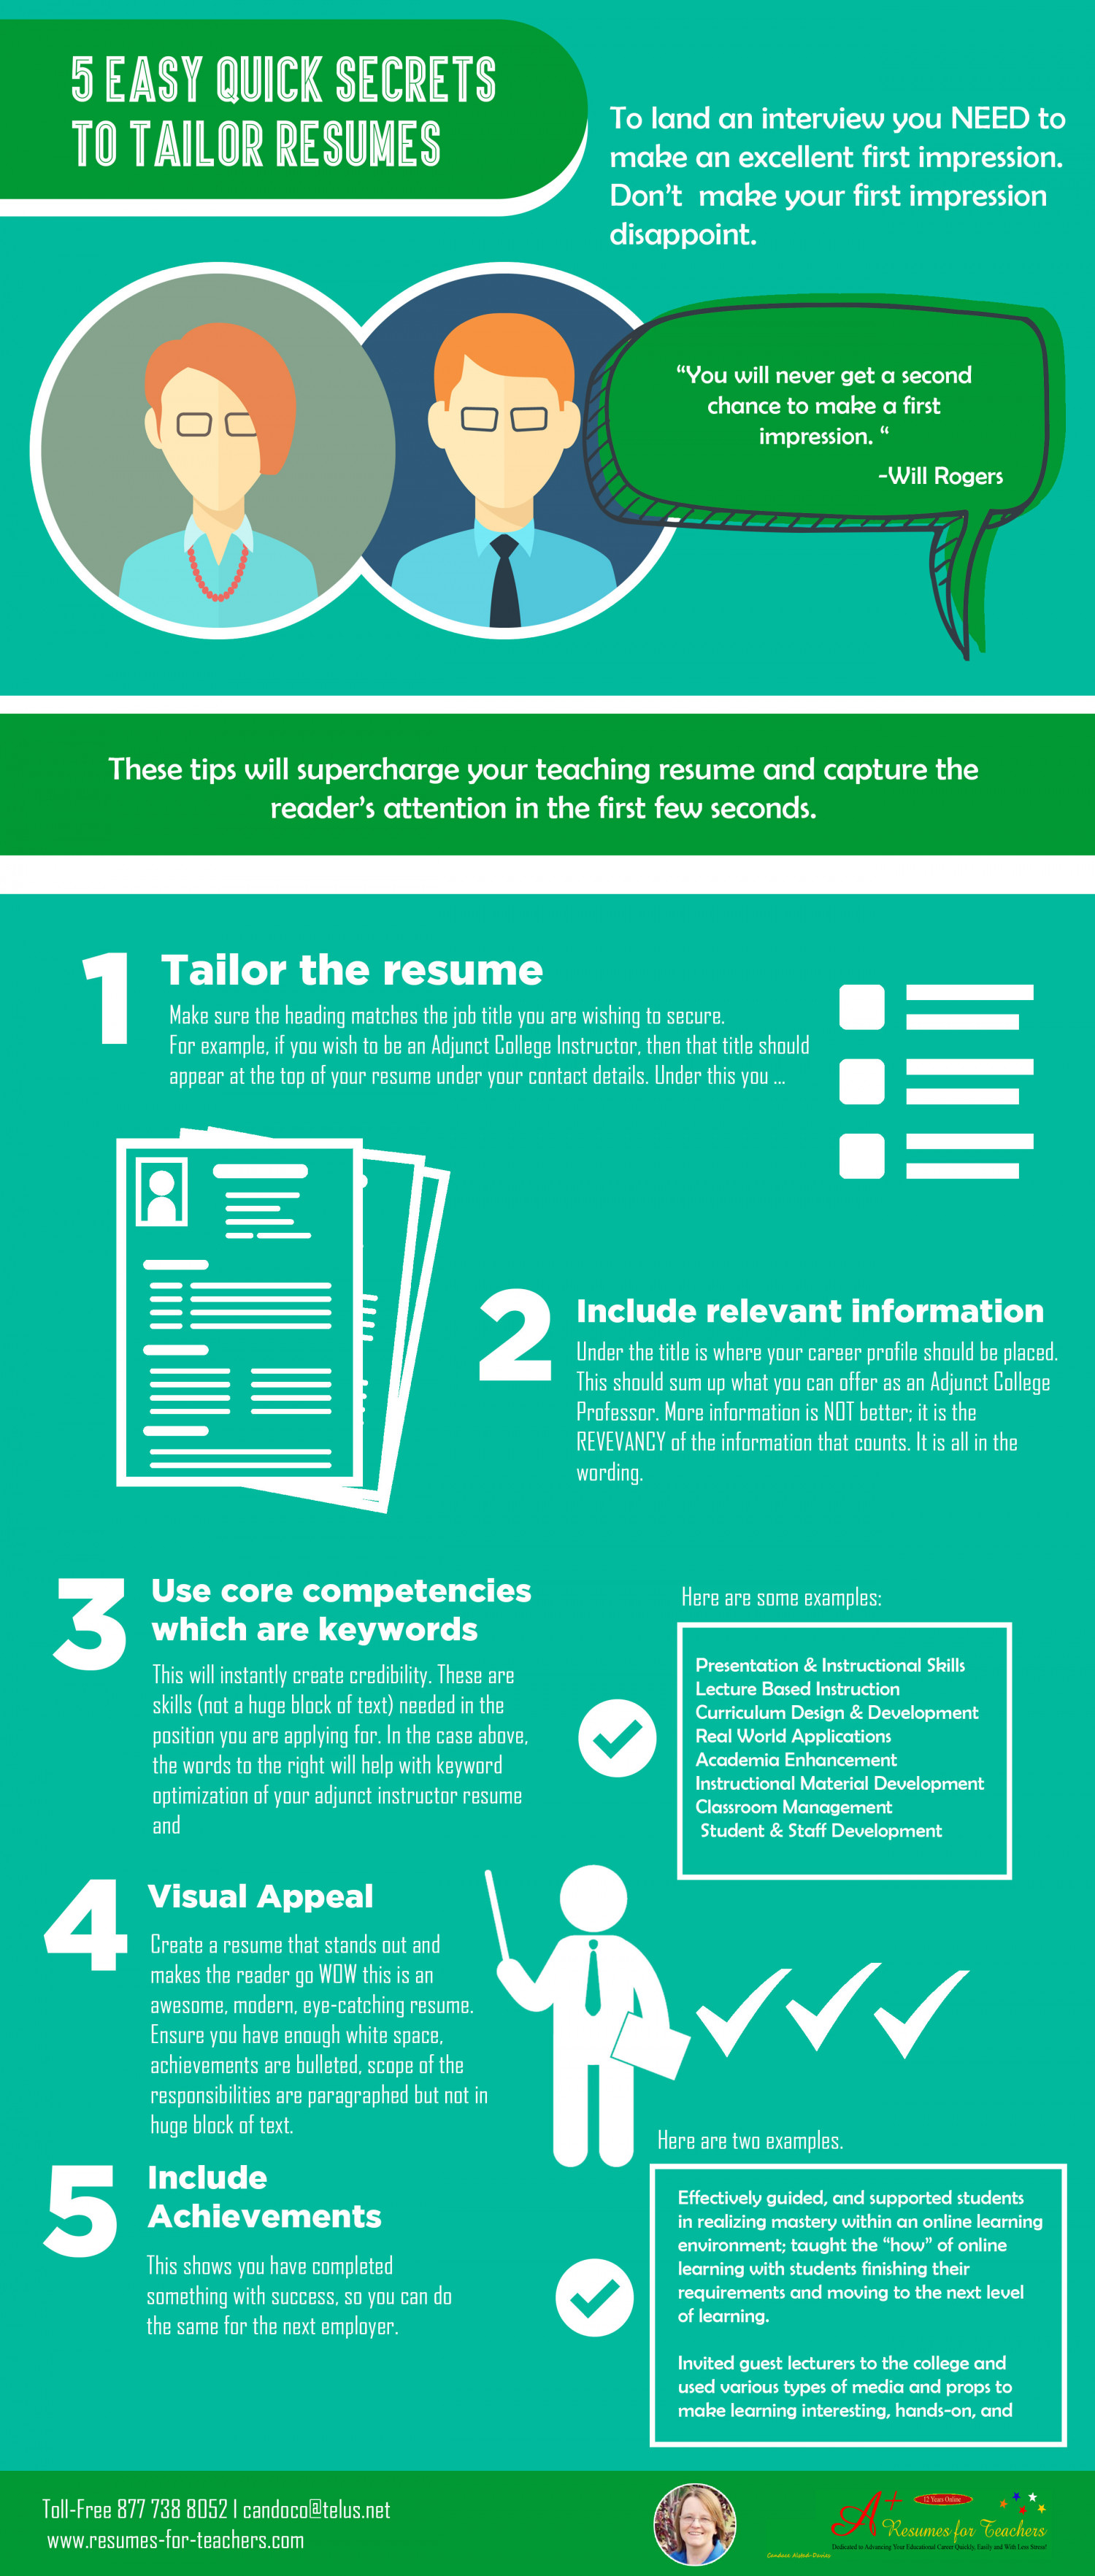 education resume writing tips and strategies for teachers